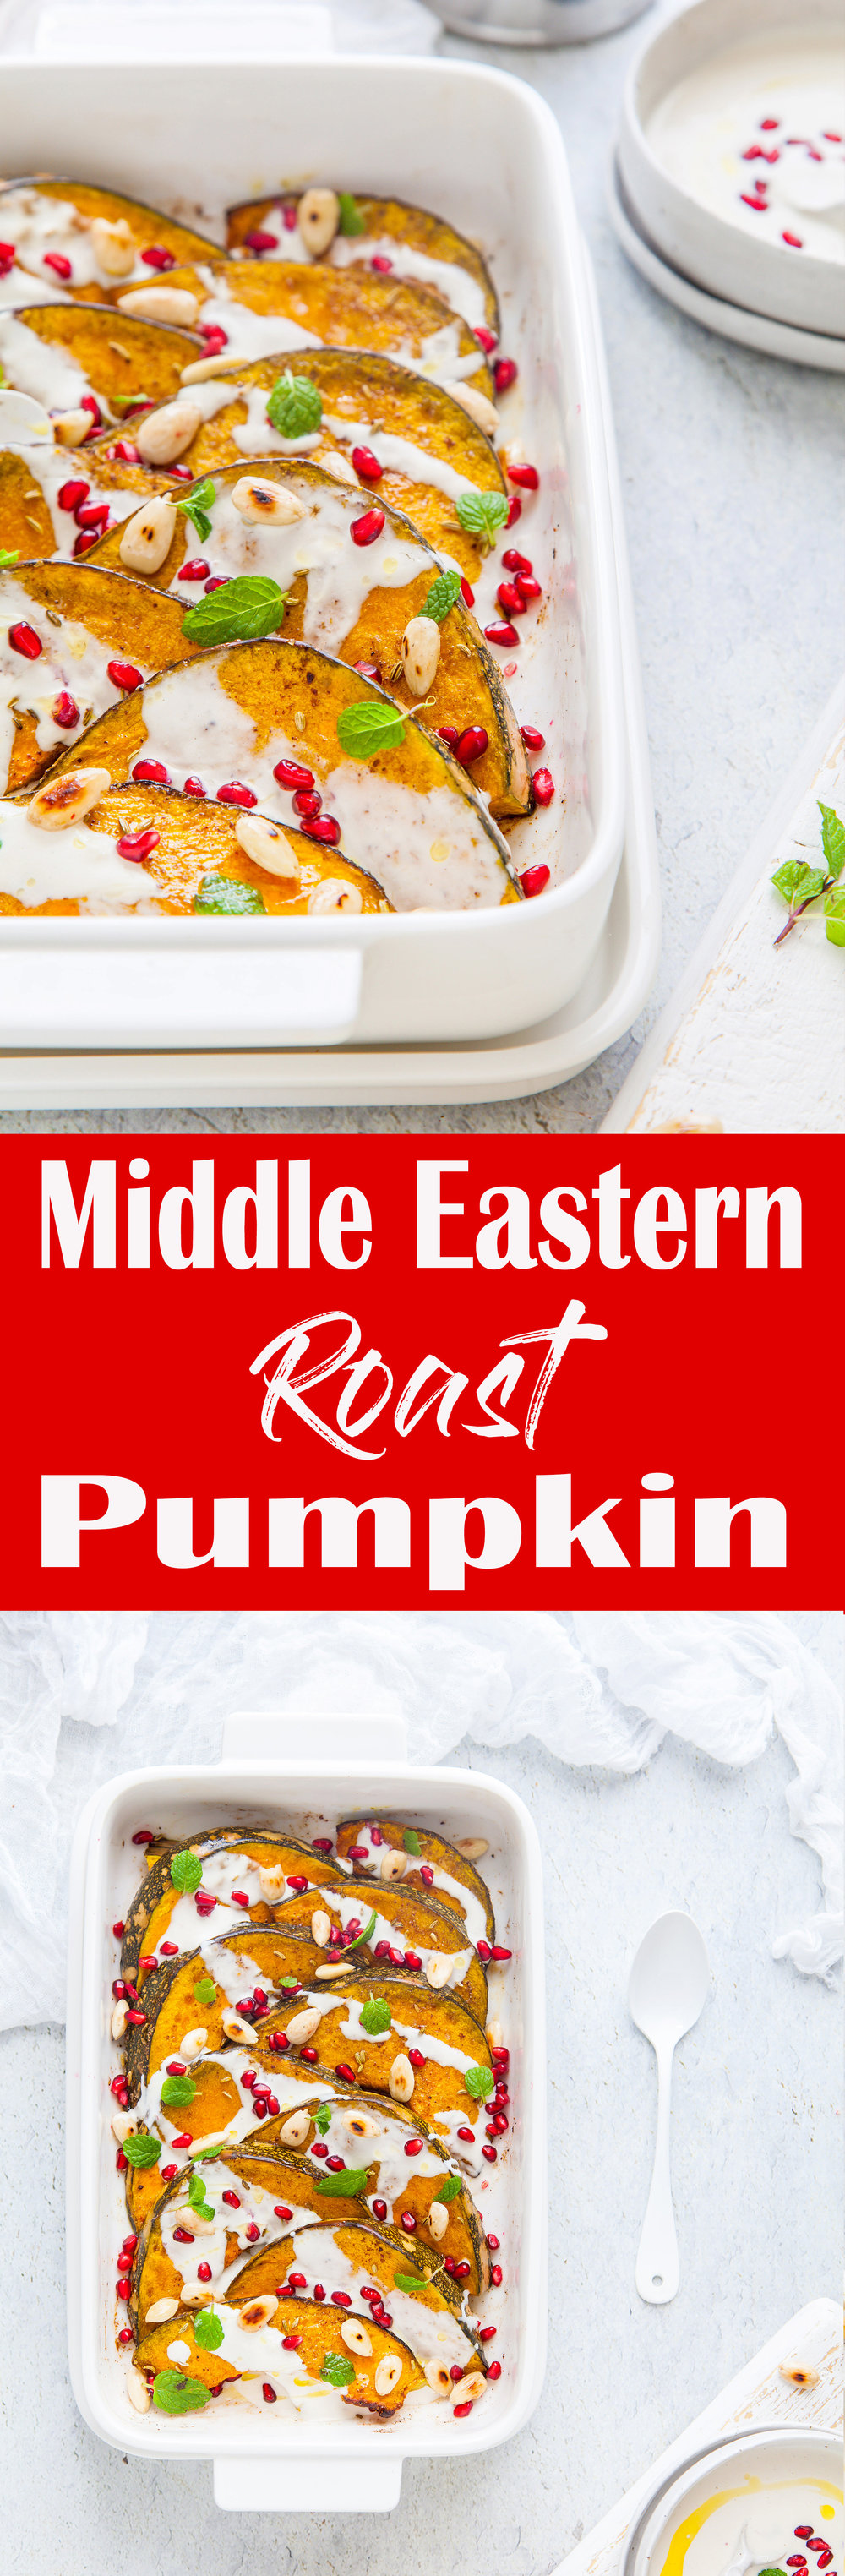 Middle Eastern Roast Pumpkin With Garlic & Yoghurt Tahini Dressing {GF, DF)